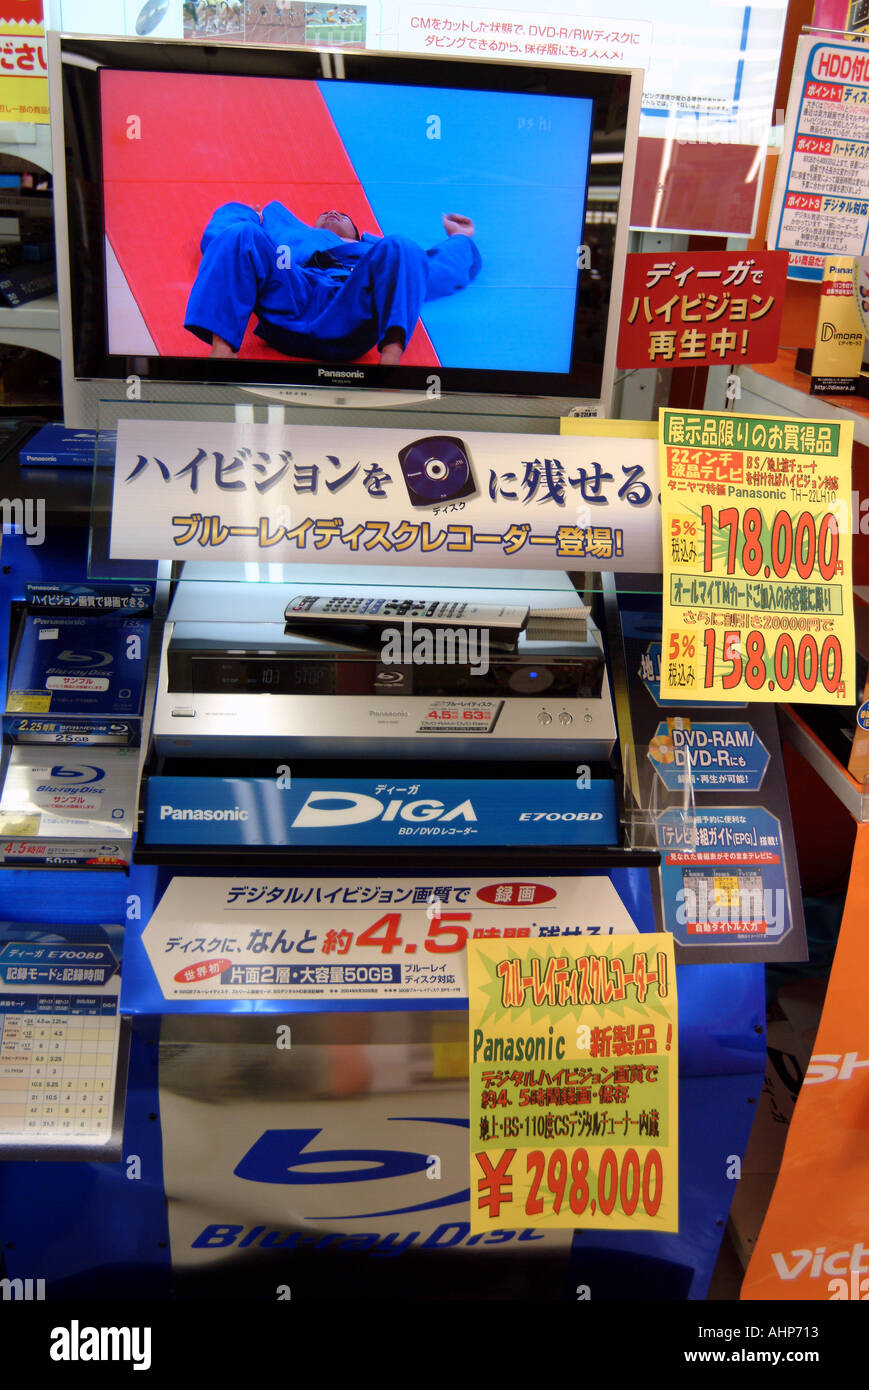 Panasonic Blu ray VCR in an electrical shop Teramachi Kyoto Japan - Stock Image